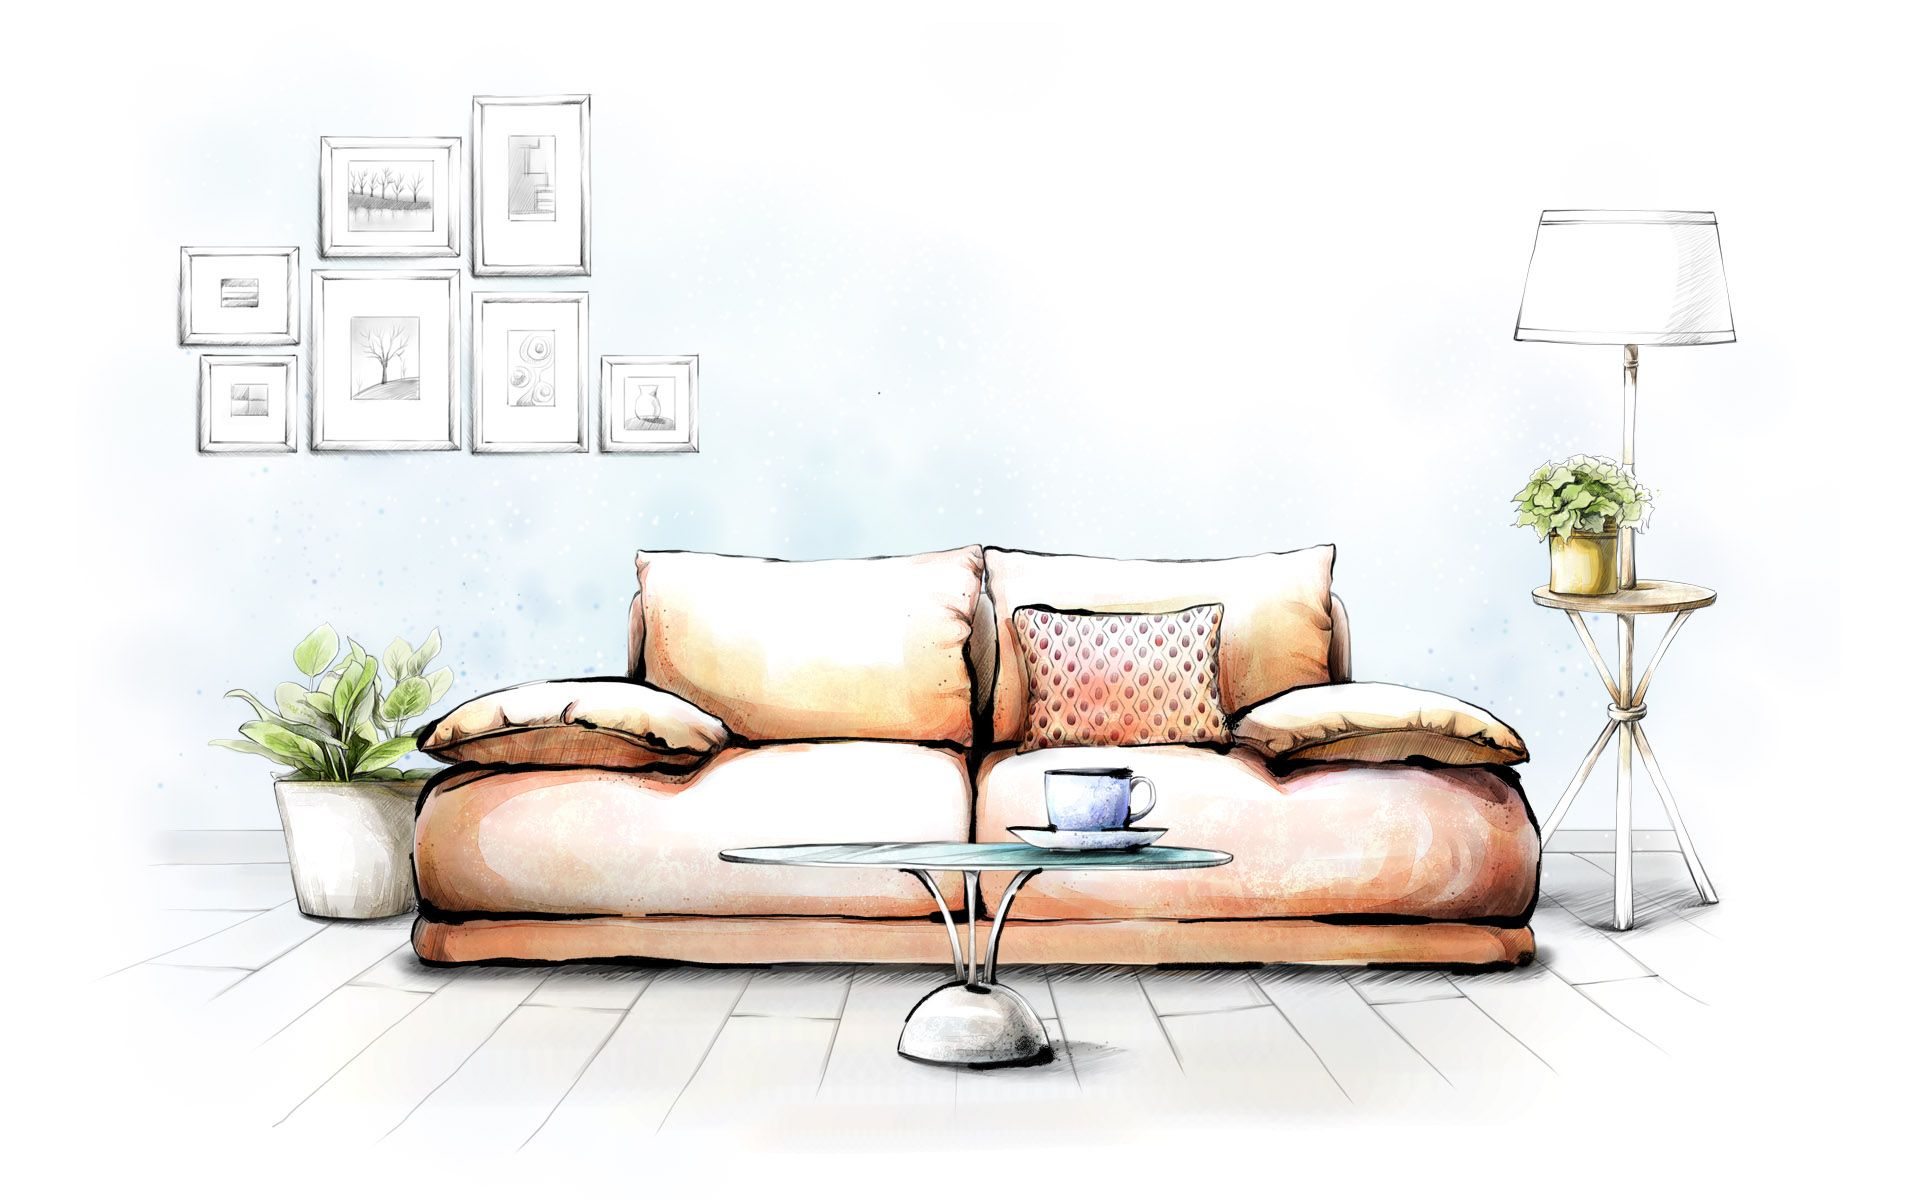 Pin By Evgenia On Hand Drawing Interior Pinterest Interiors